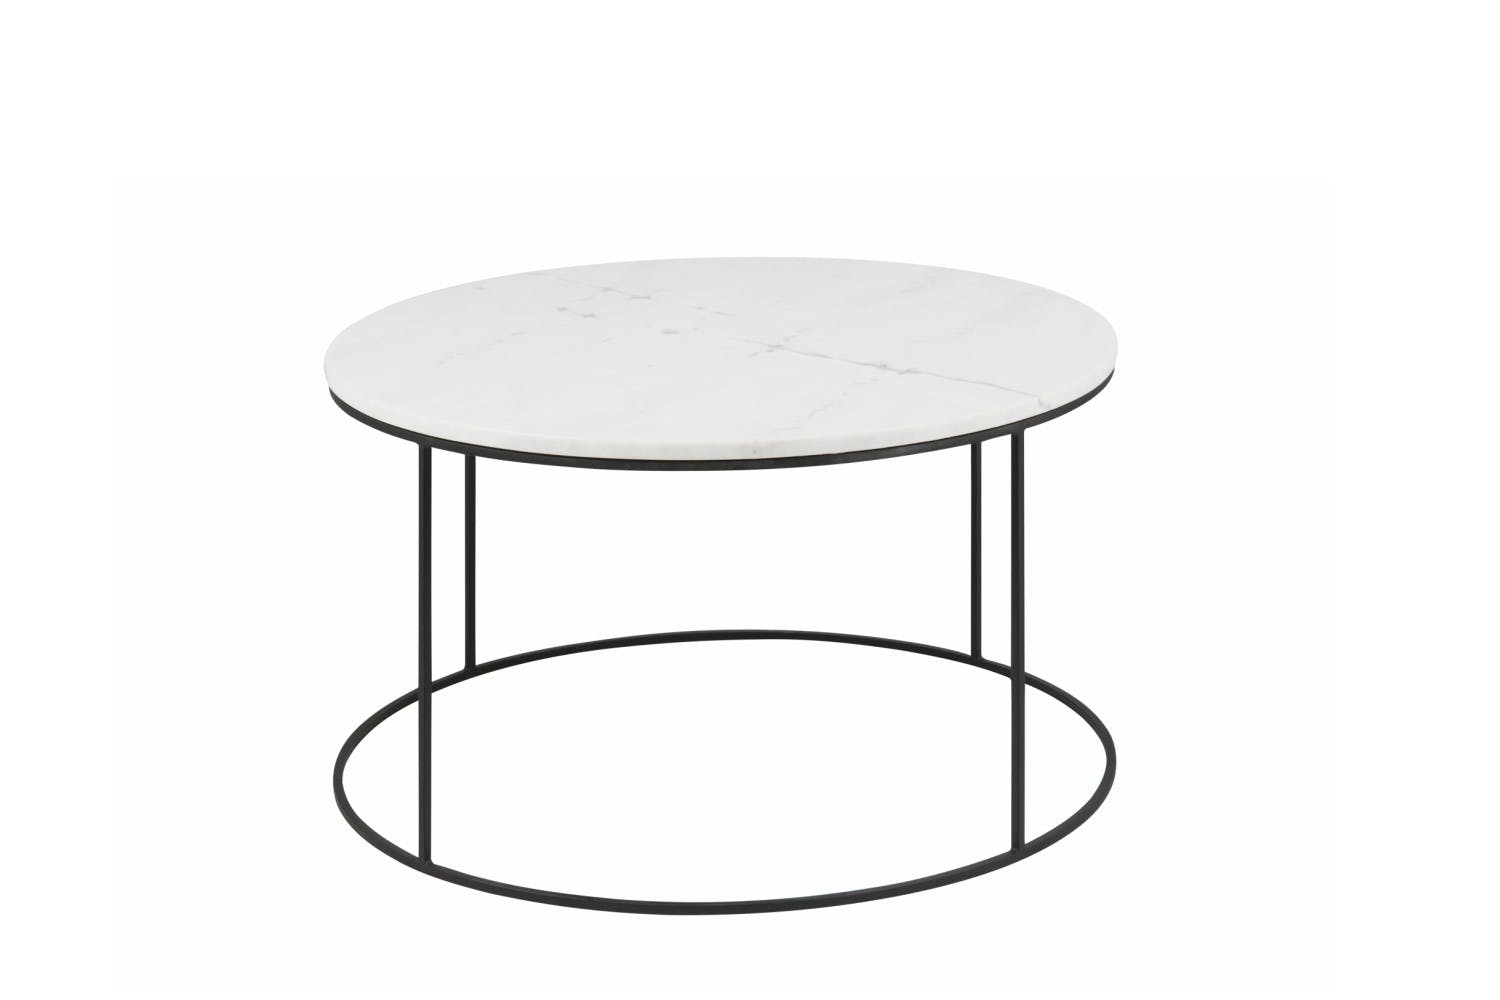 cassie round coffee table accent with glass antique inlaid tables mats chairs edmonton inch console narrow trestle dining tile bistro diy storage marble furniture gold two